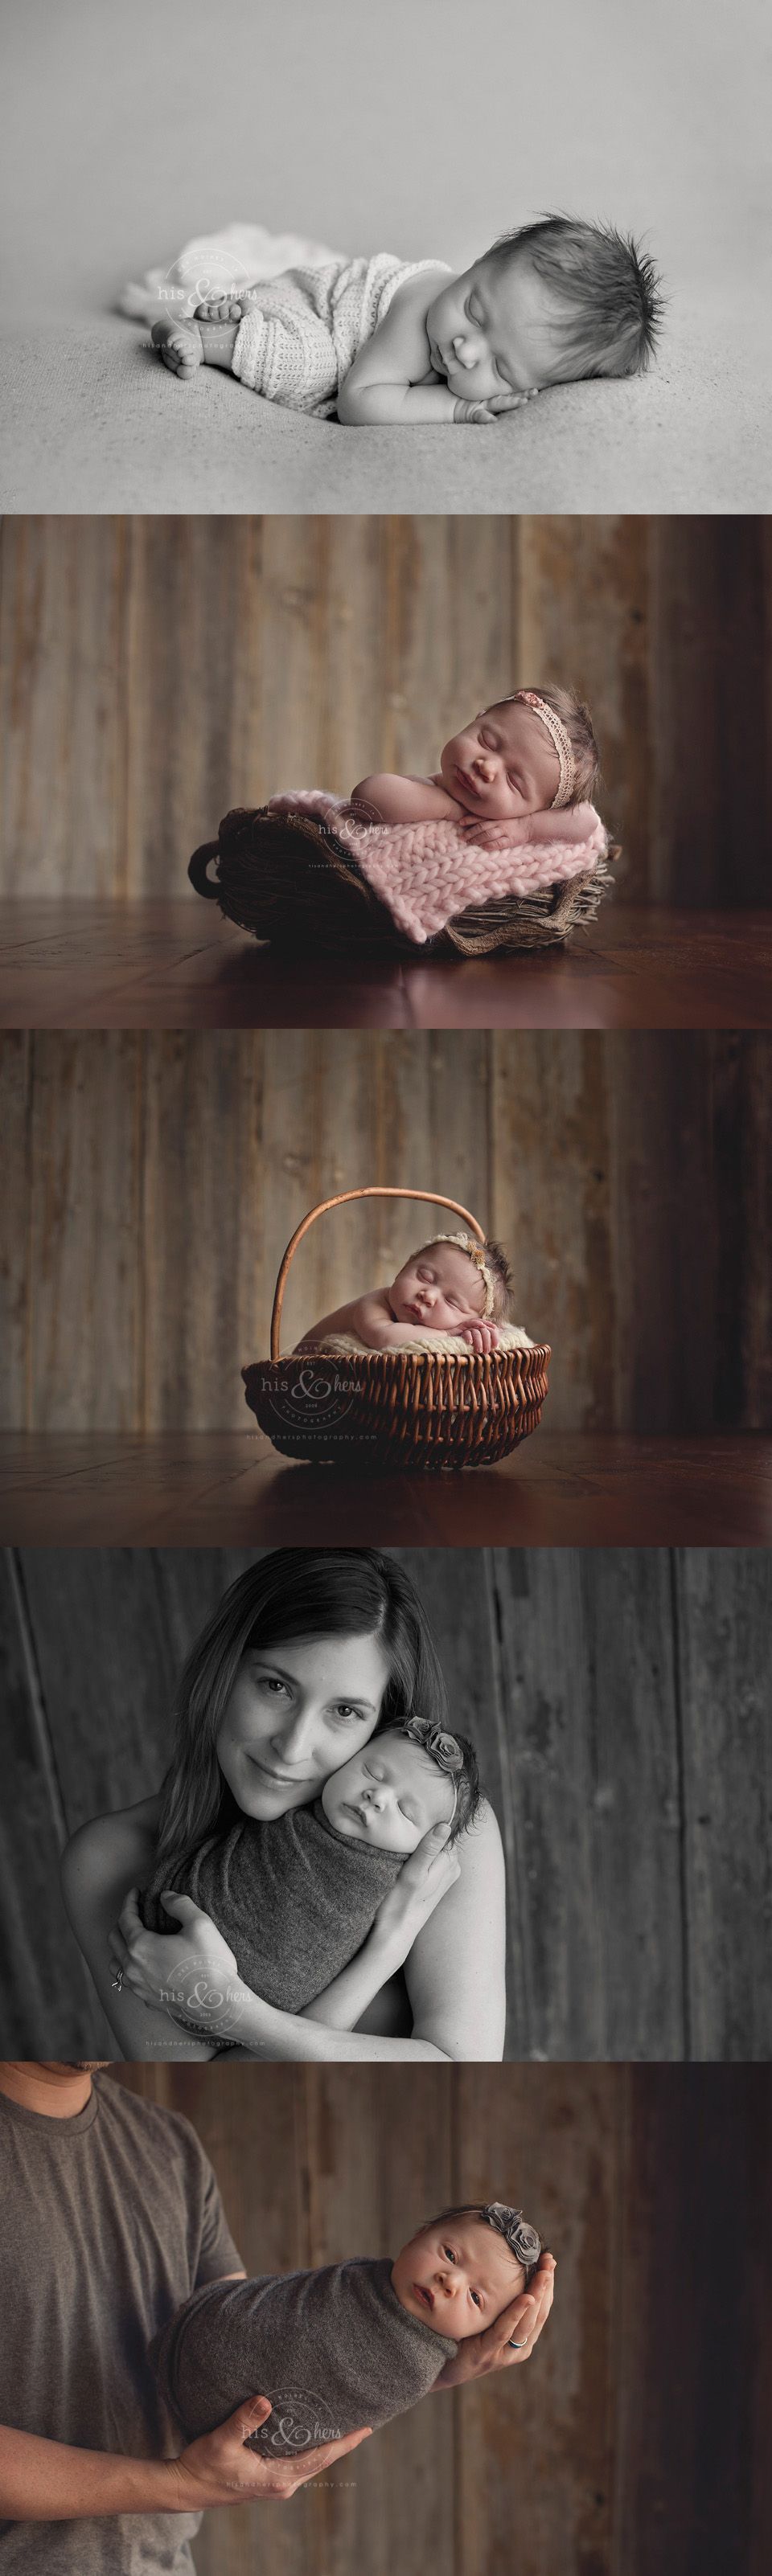 Newborn | Marissa, 13 days new